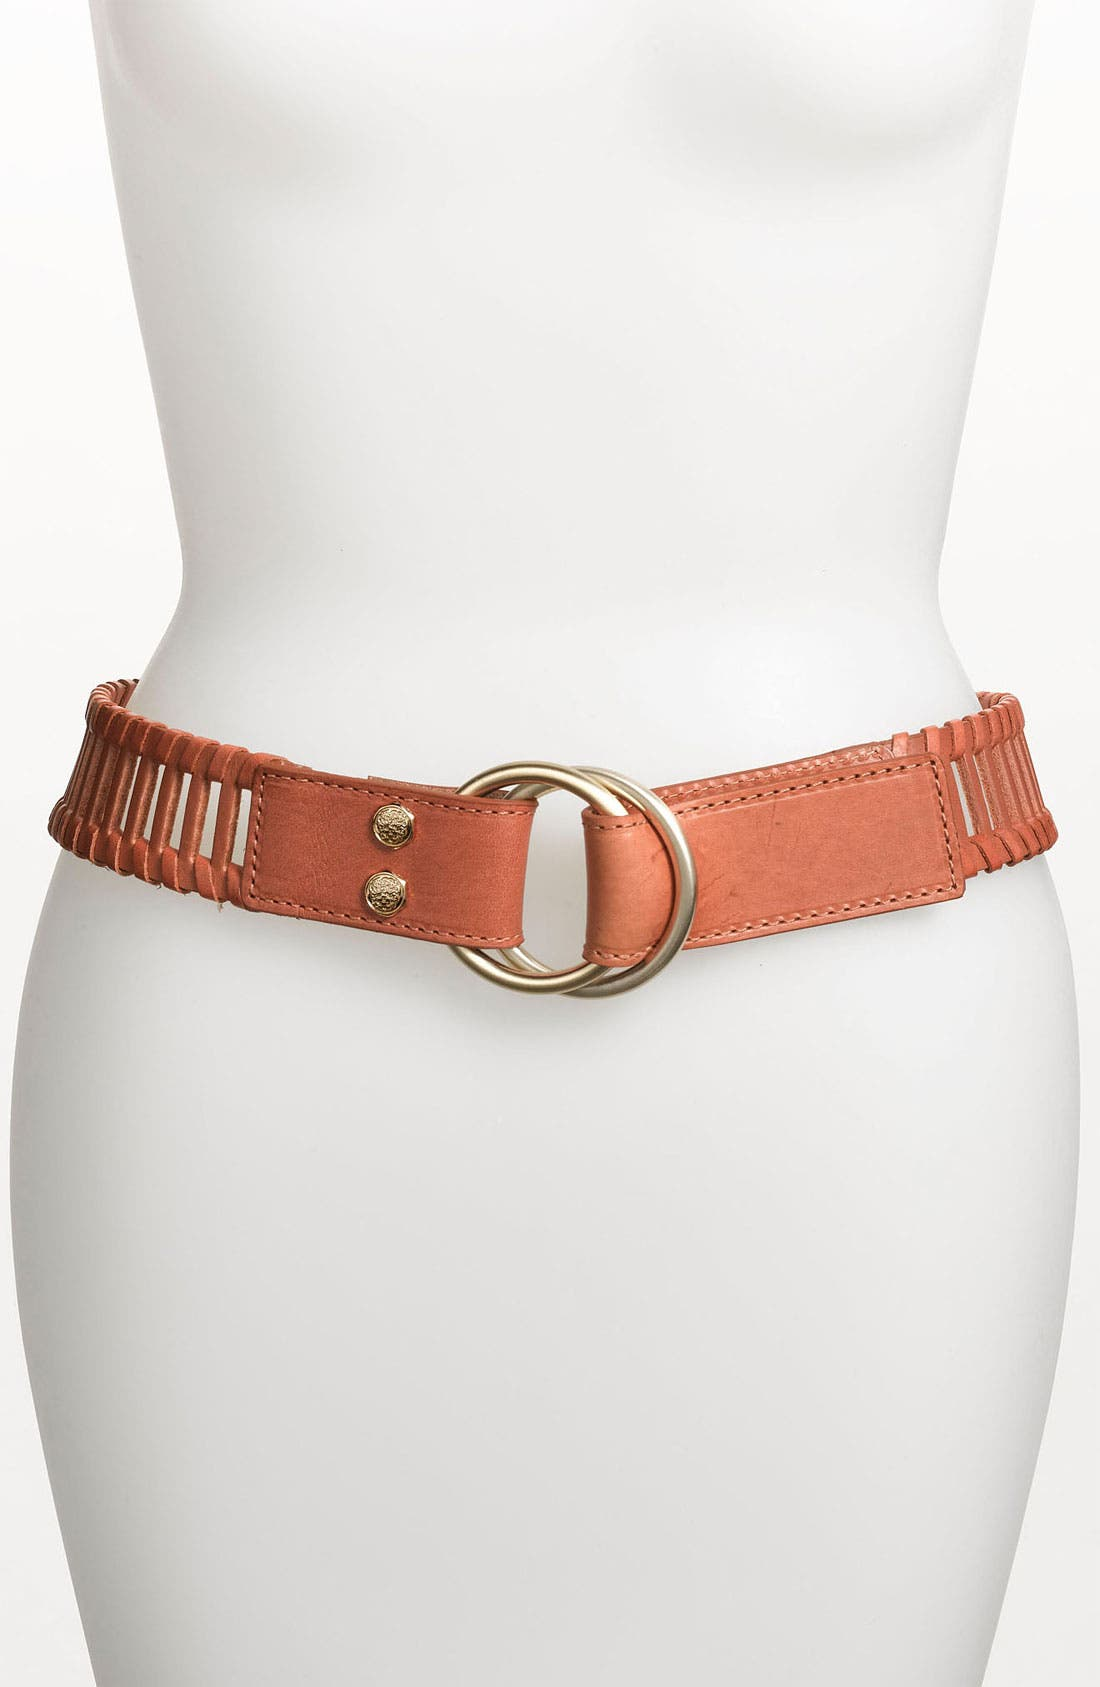 Main Image - Vince Camuto Double Pull Back Leather Belt